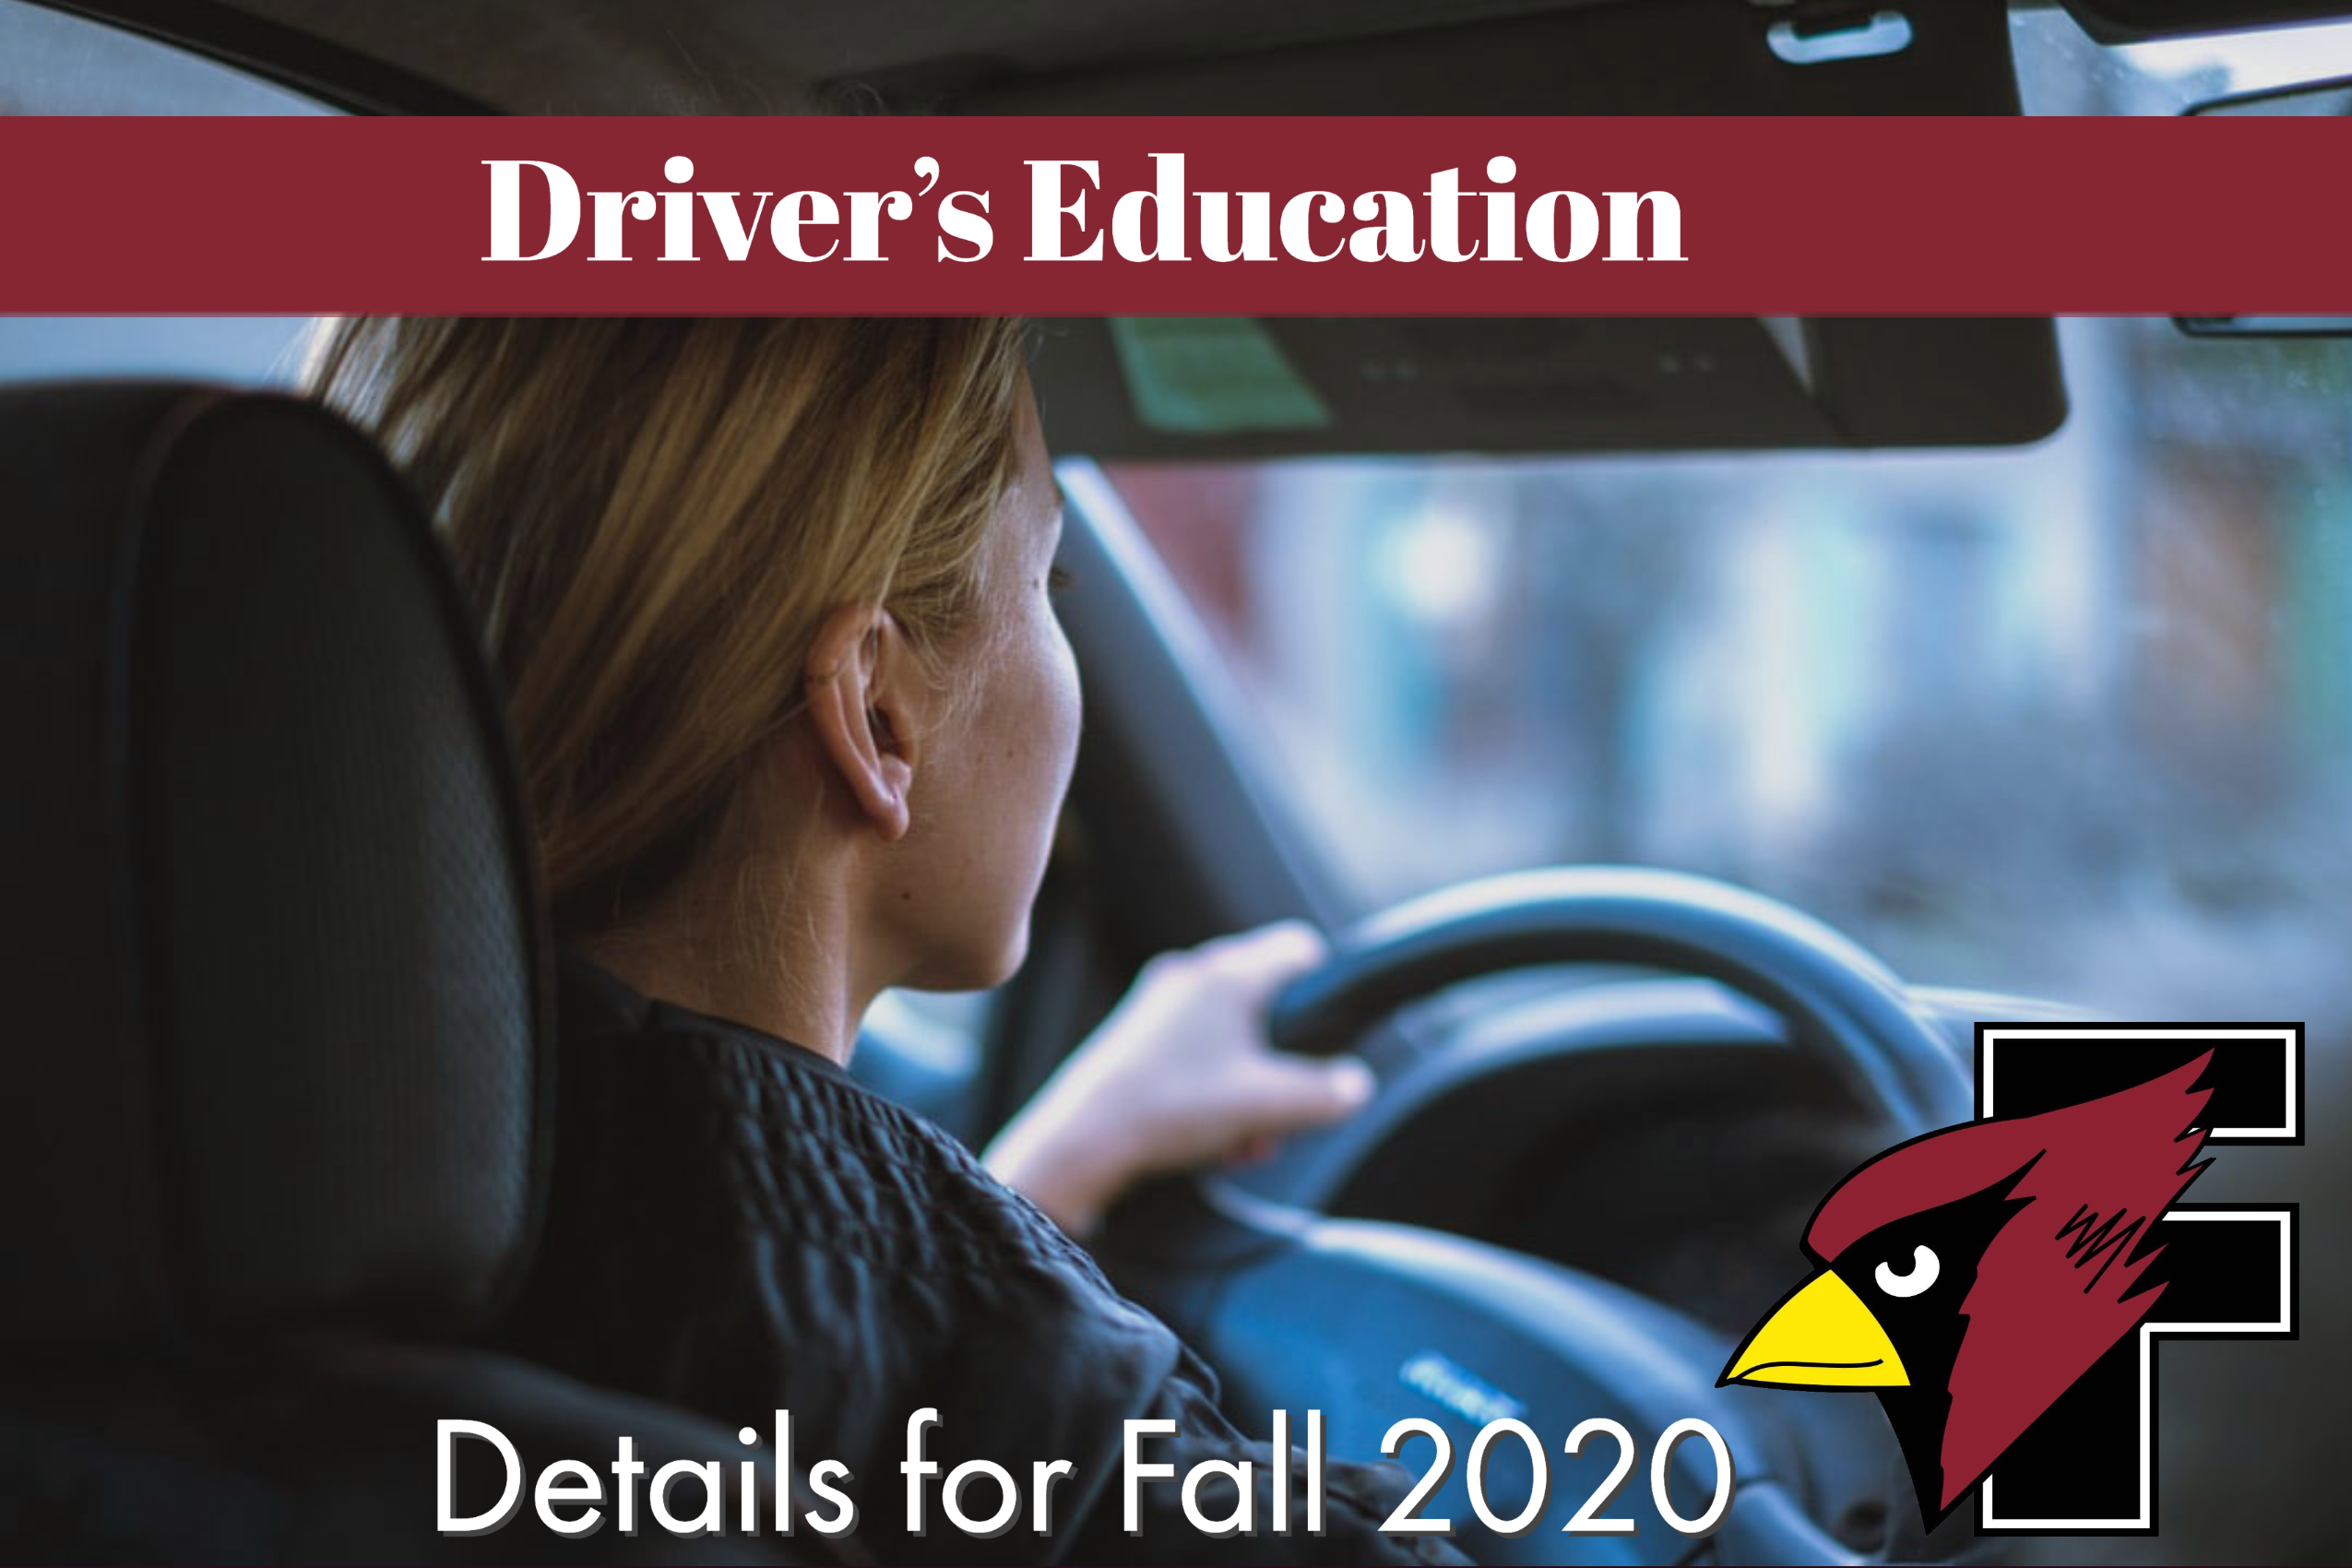 Driver's Education Details for Fall 2020